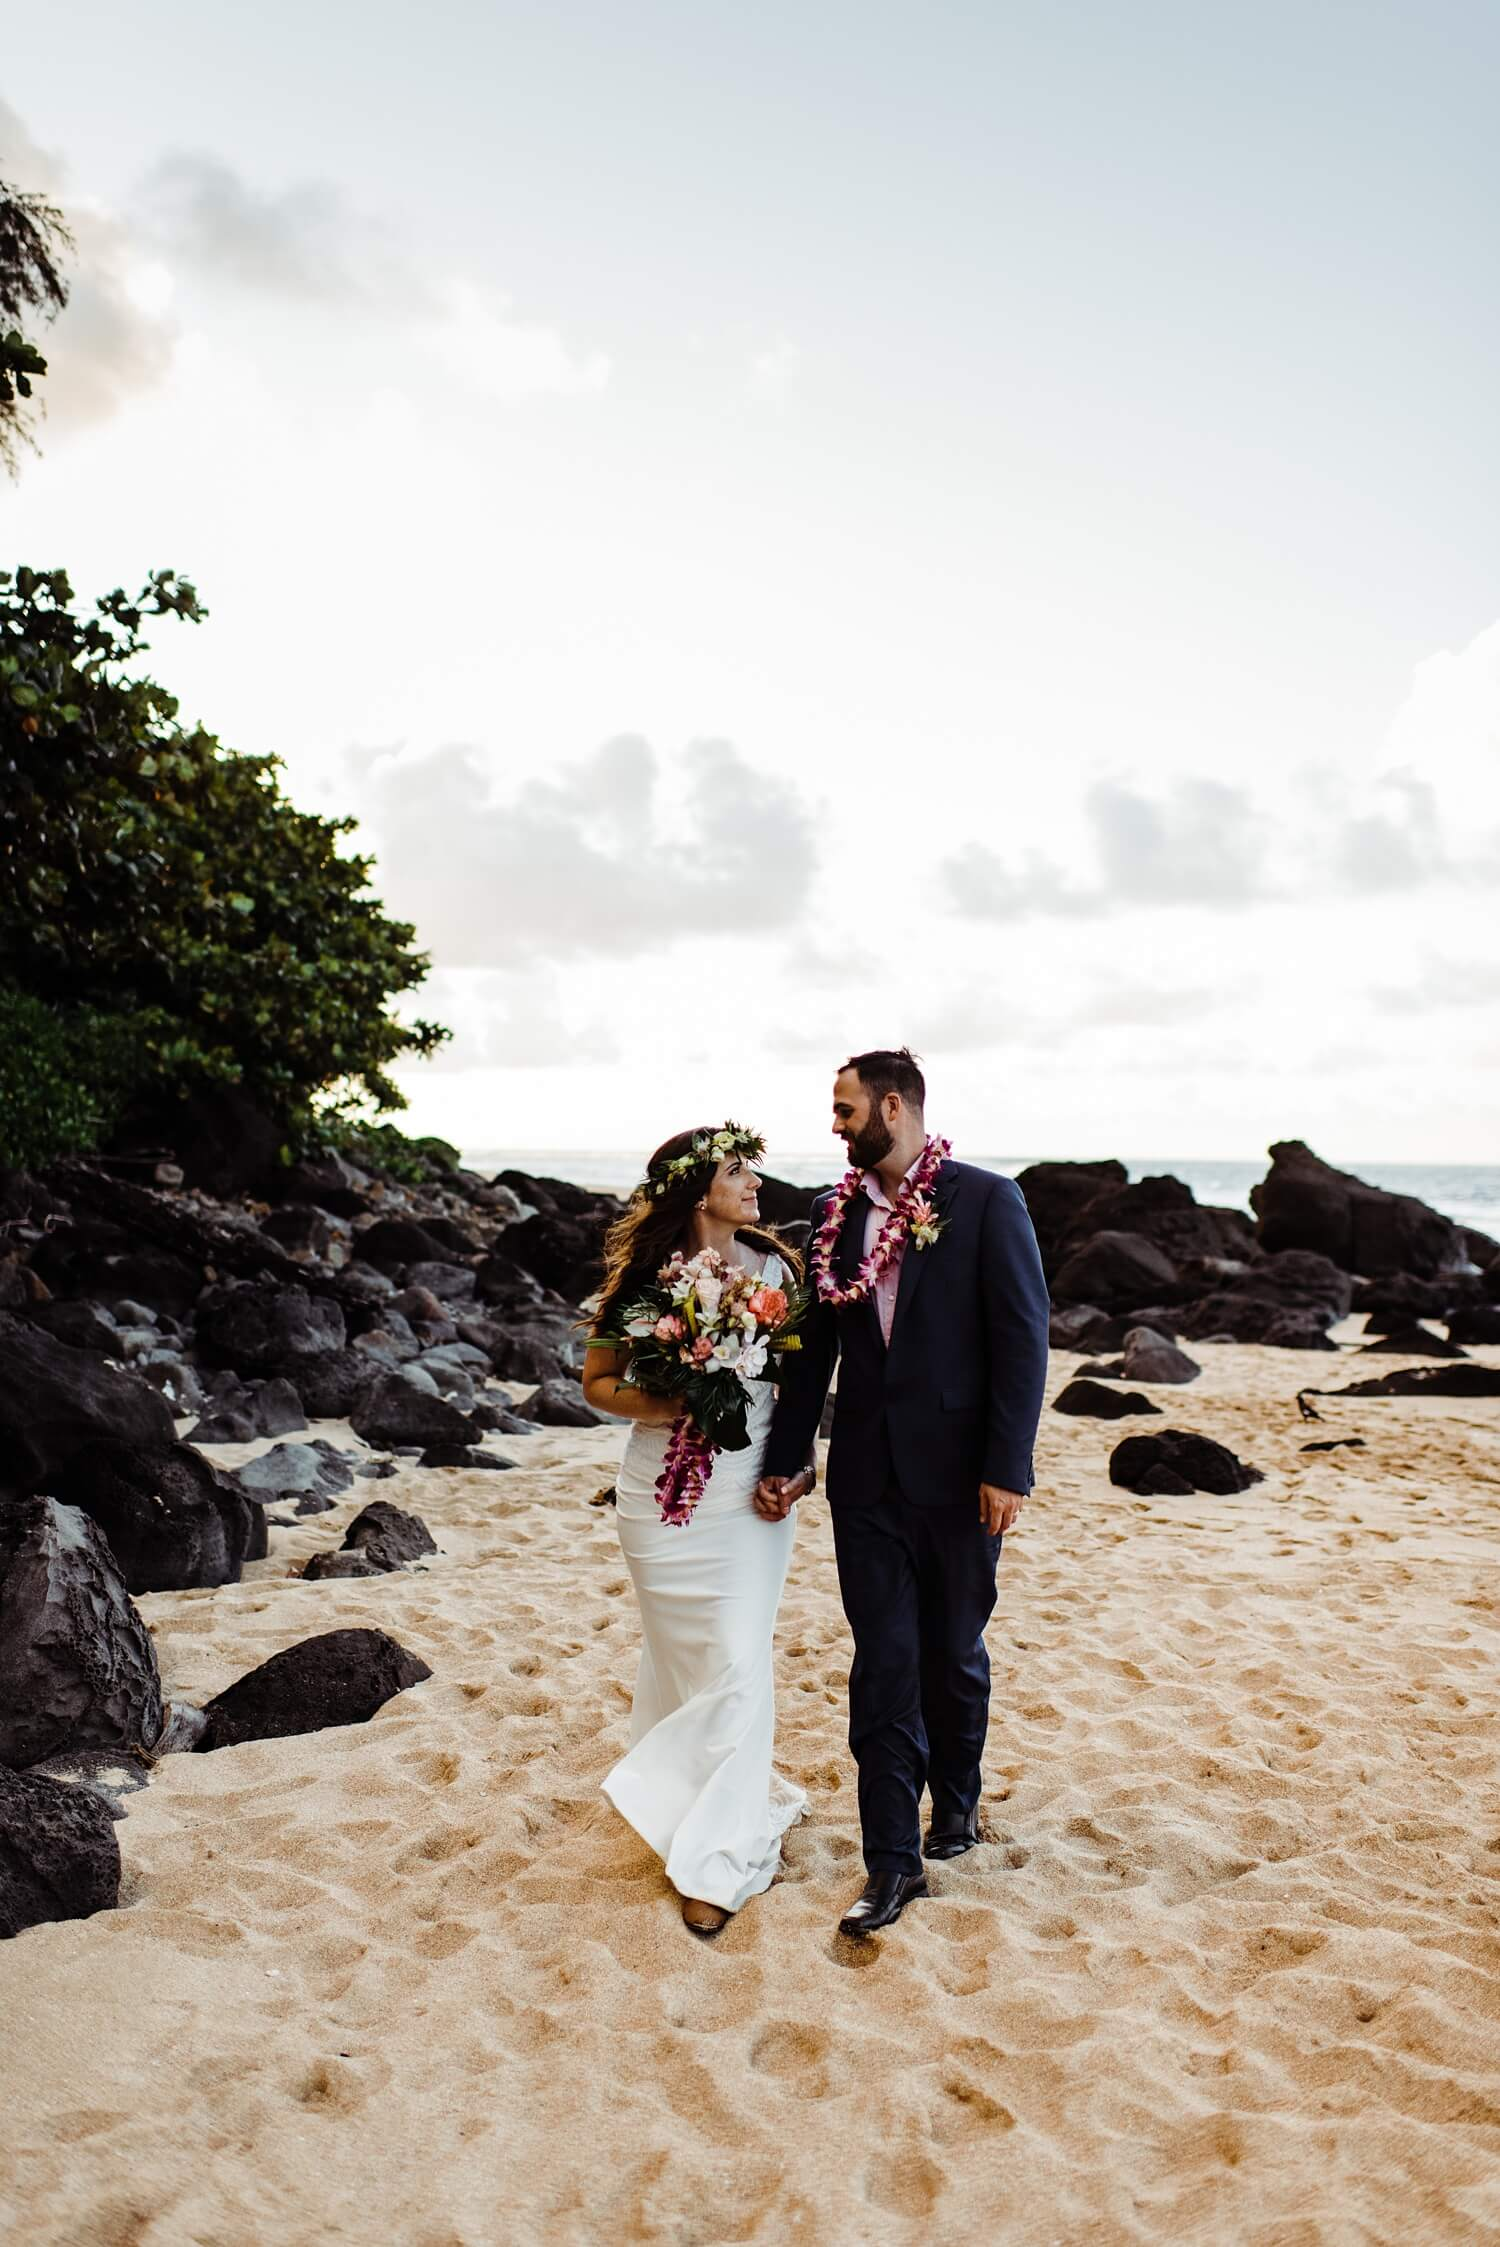 adventure elopement photographer,adventure elopements,adventure weddings,beach wedding,elope,elope on kauai,elopement,hawaii elopement,hawaii wedding,kauai,kauai elopement,kauai wedding,princeville wedding,